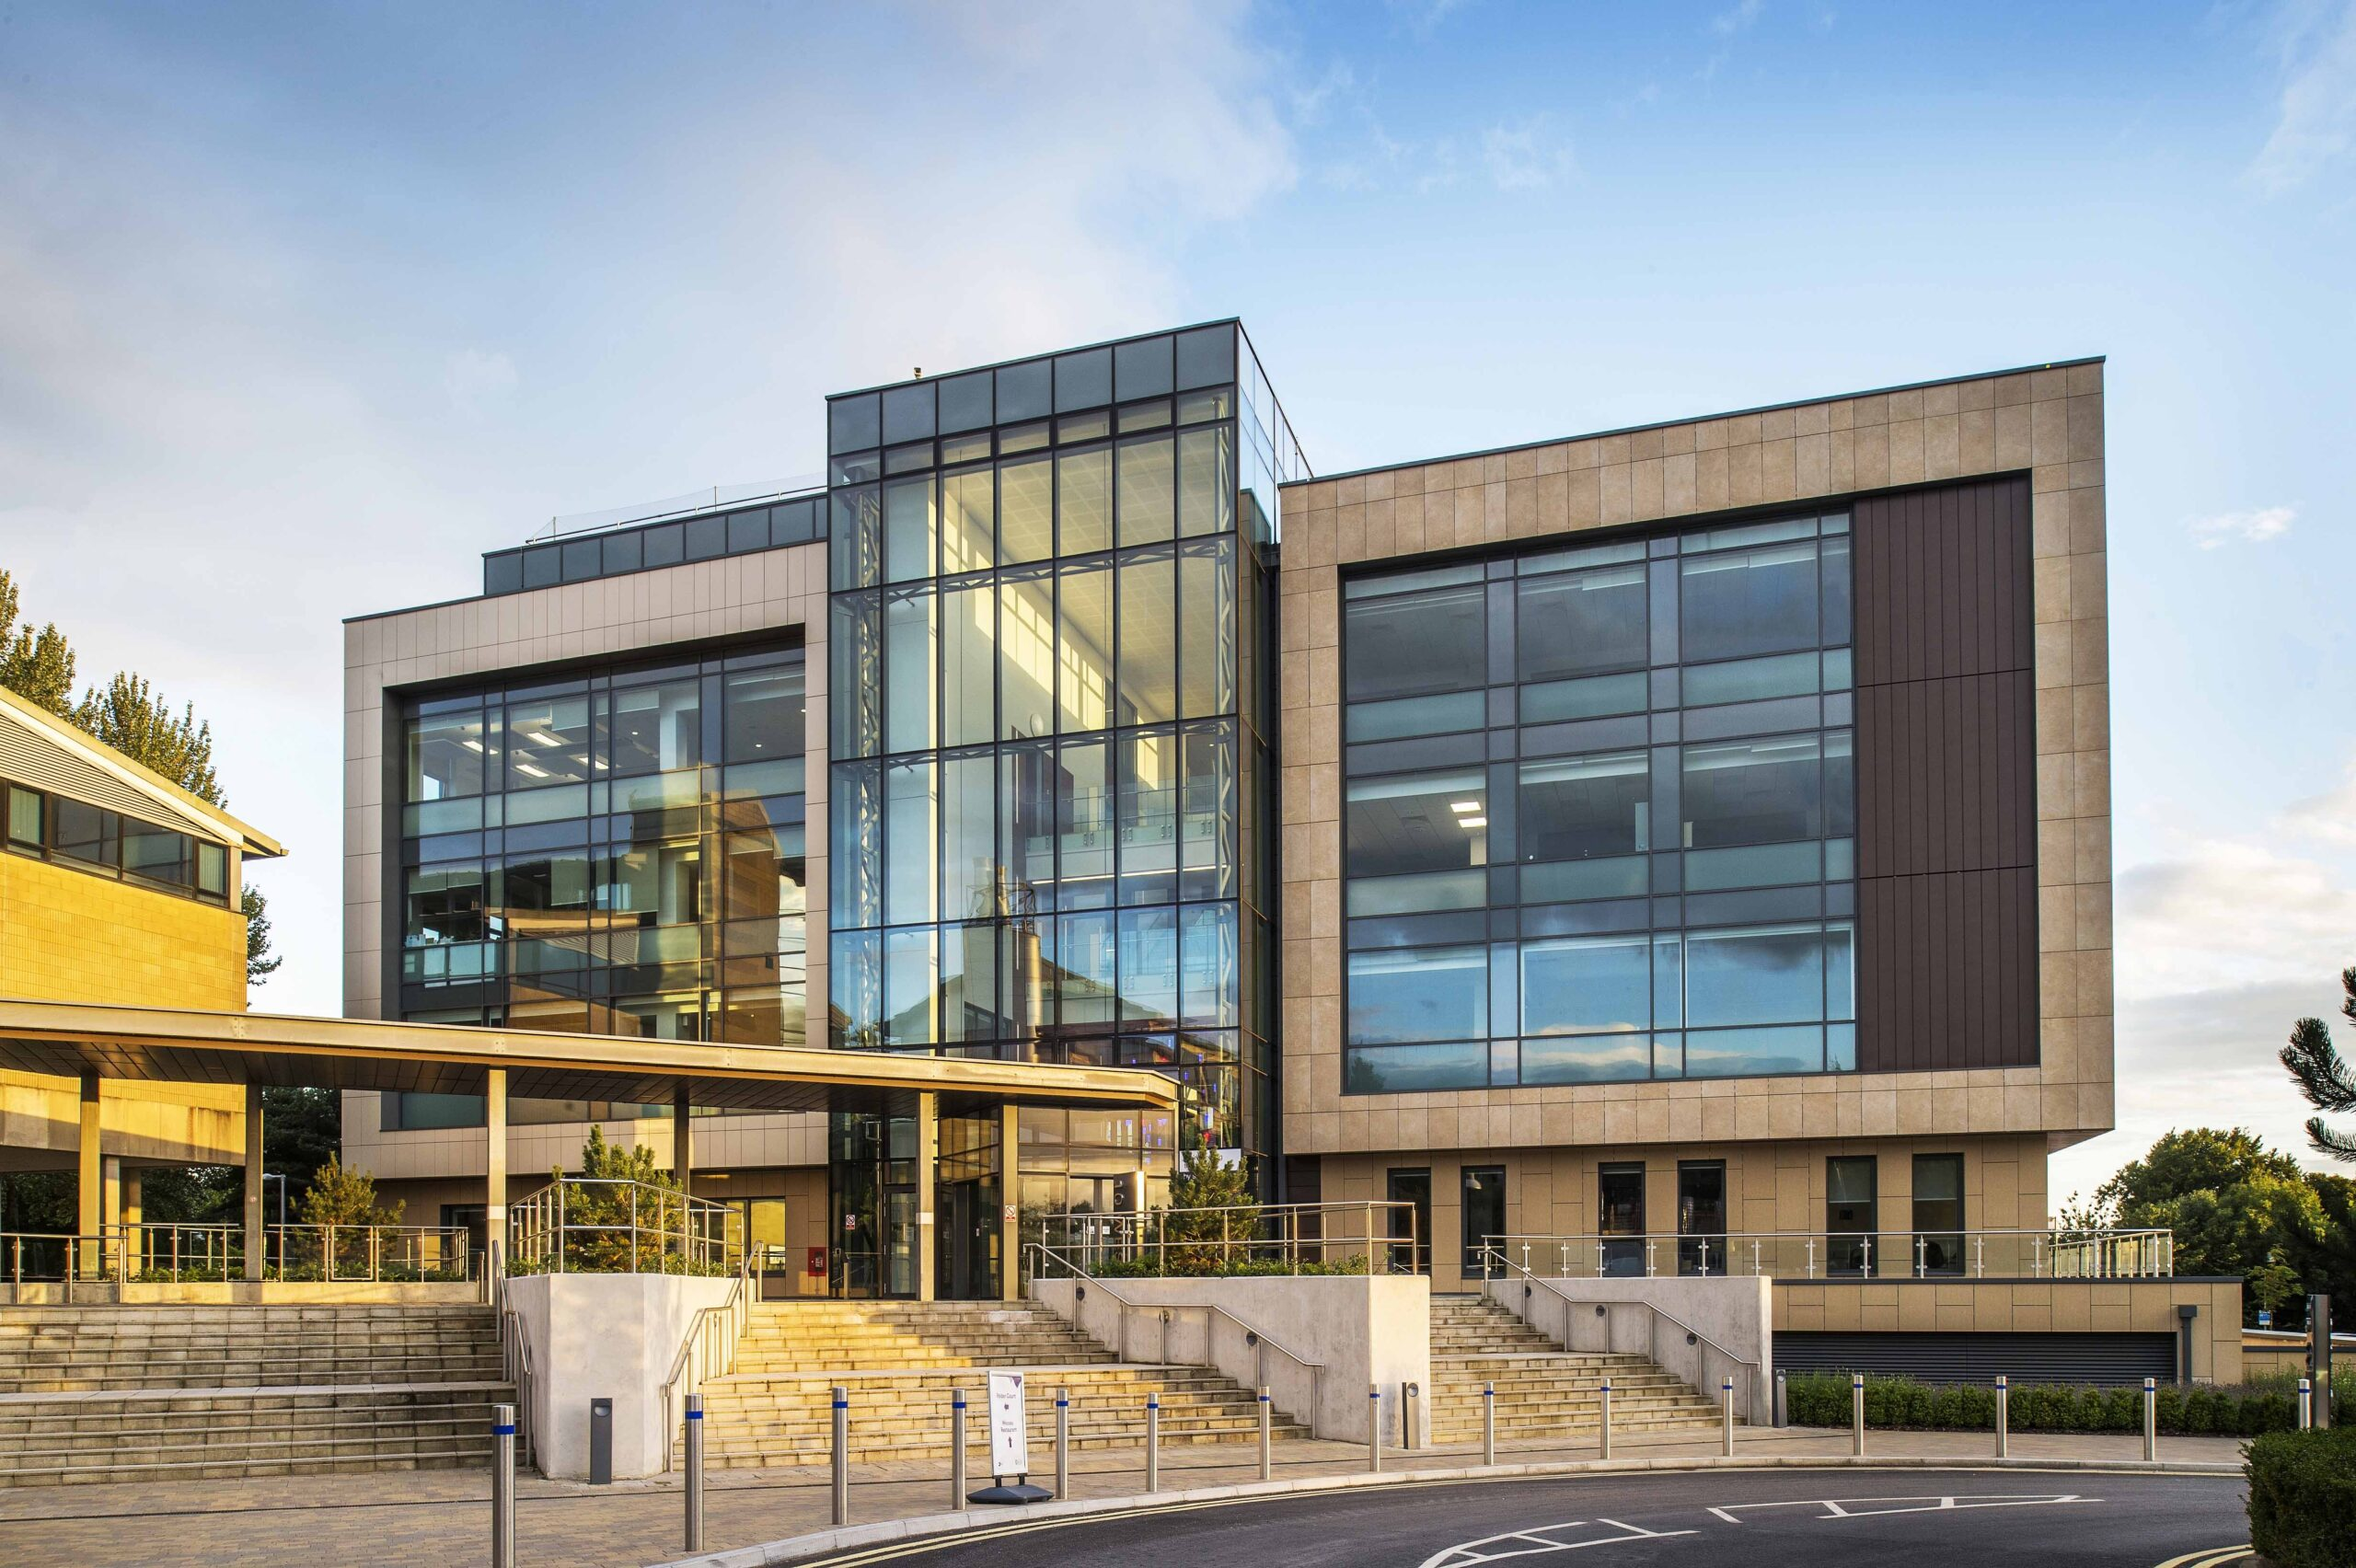 Exterior facade of 10 West at the University of Bath